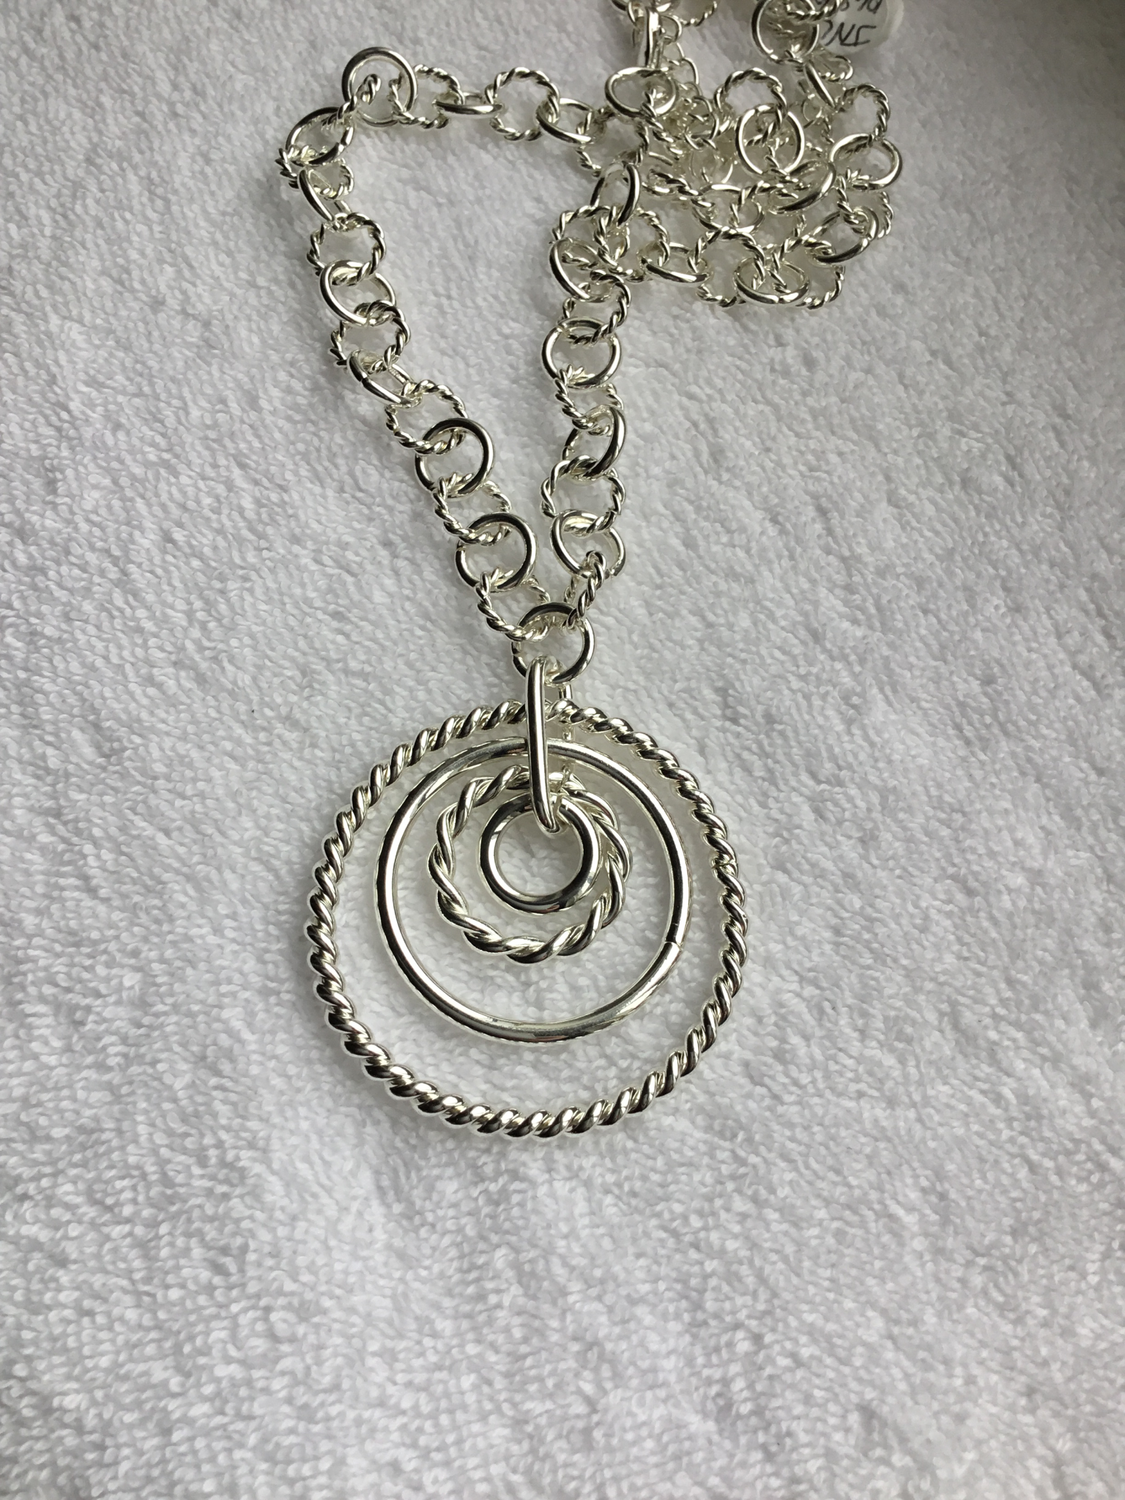 Ring Frenzy Necklace